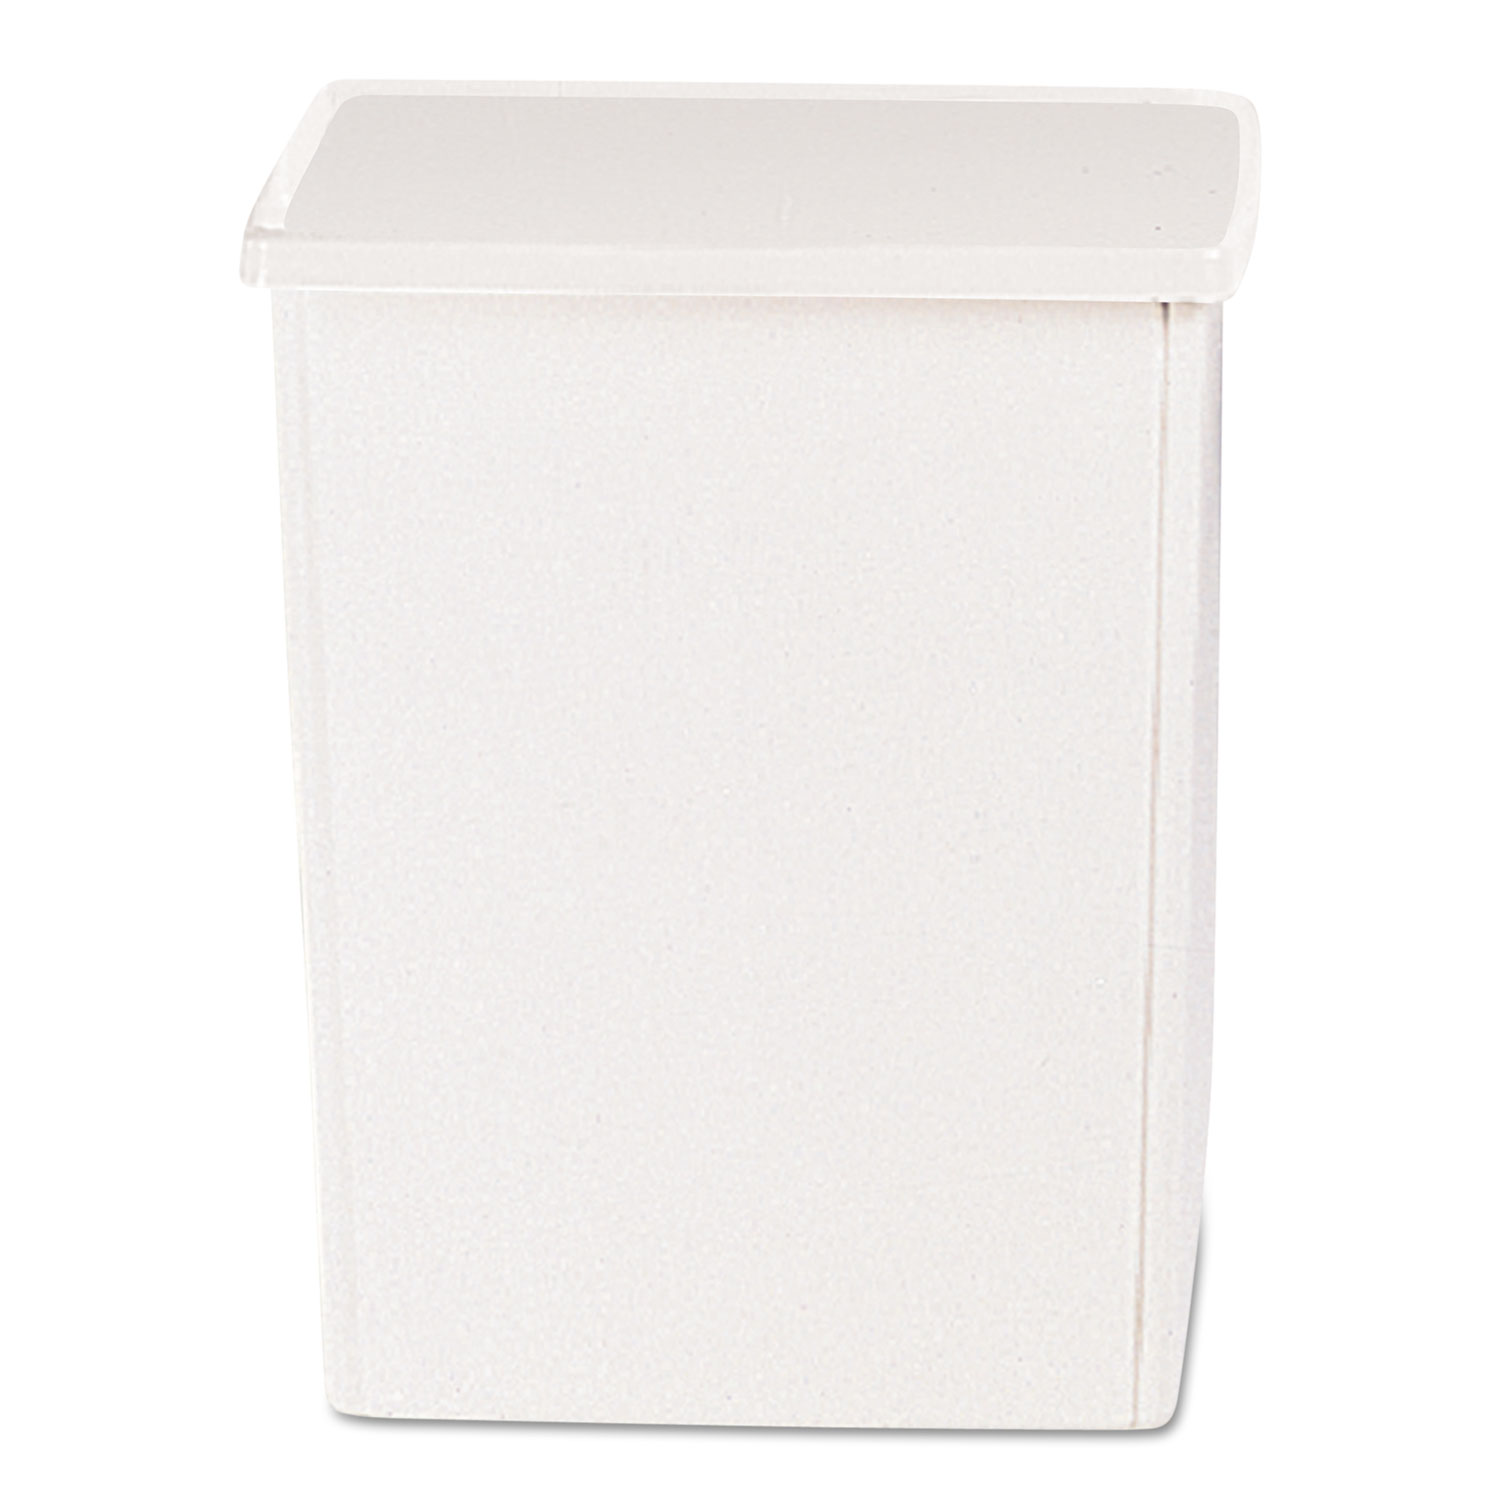 CONTAINER,GLUTTON,56GL,WH